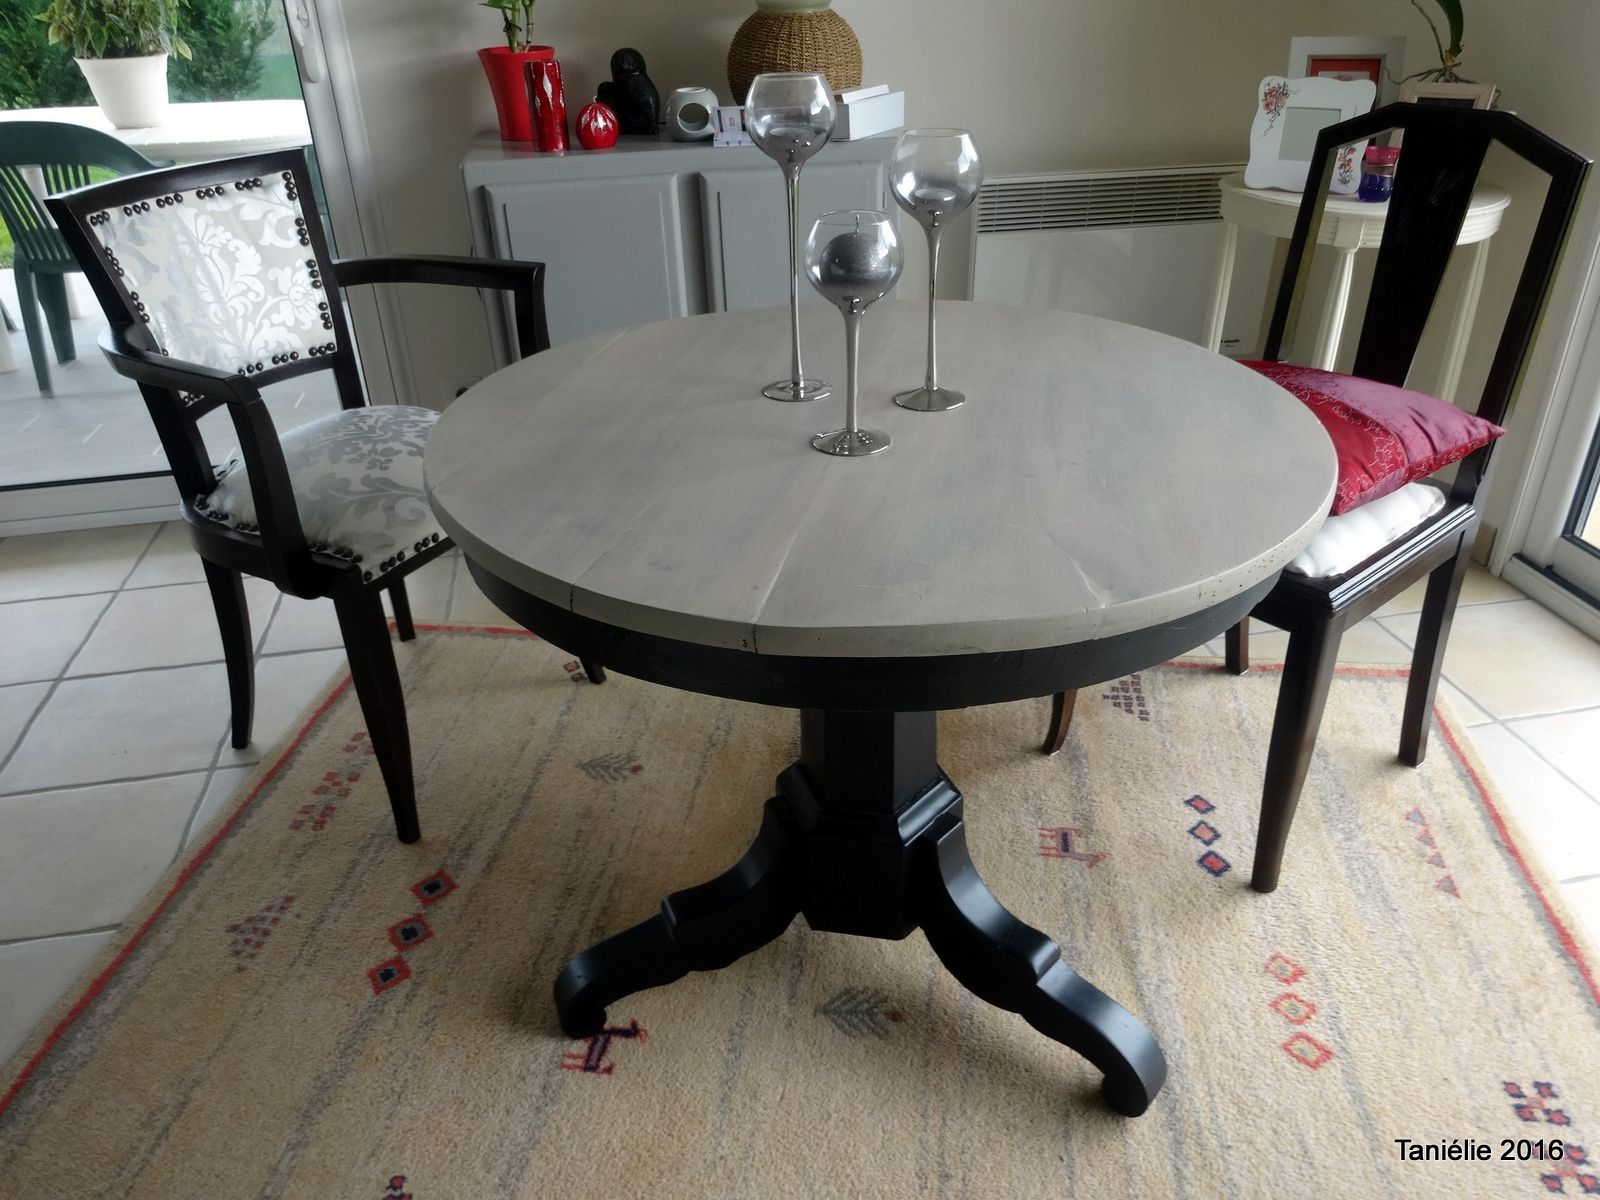 La vieille table ronde relook e avec un peu de fil for Table un pied